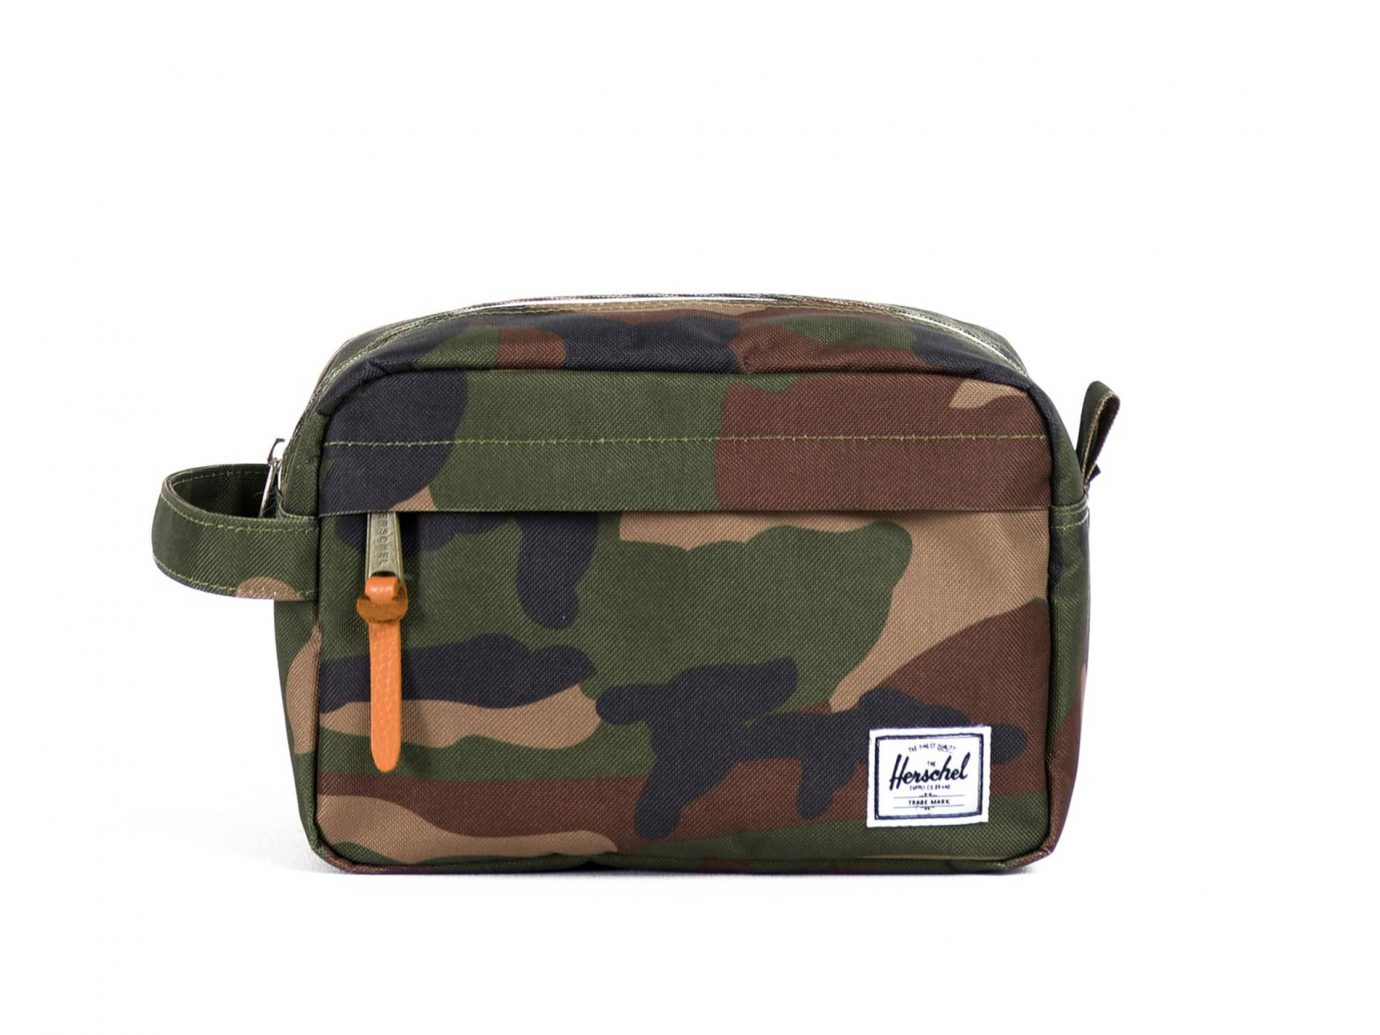 'Chapter' Toiletry Case HERSCHEL SUPPLY CO.